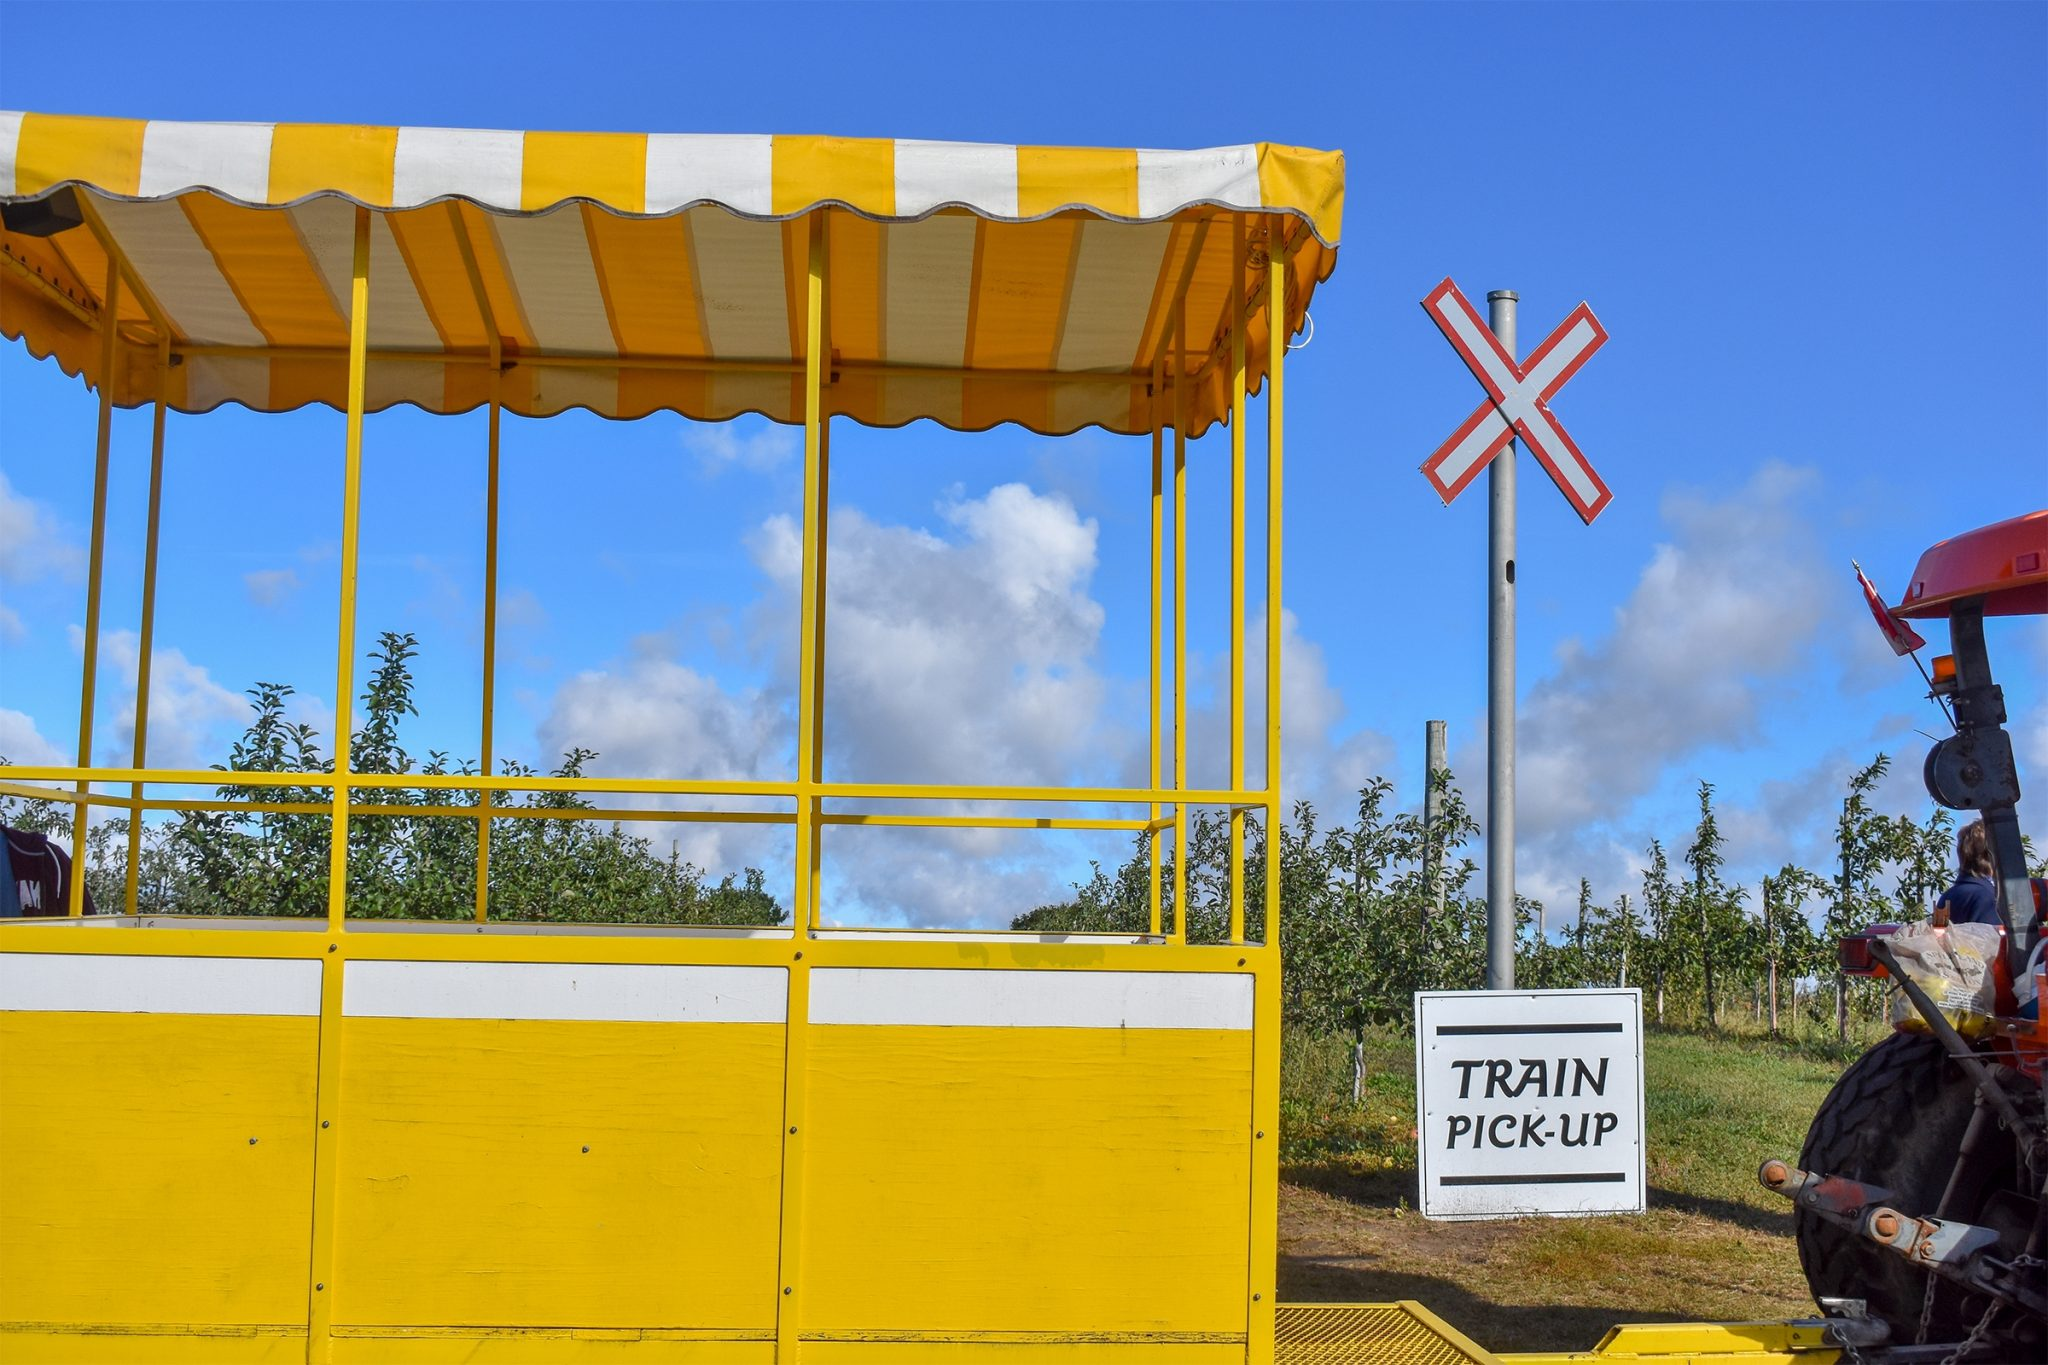 Catch the train from Apple Land's orchards back to your car with your heavy bags of apples. Photo by Laura Thorne.